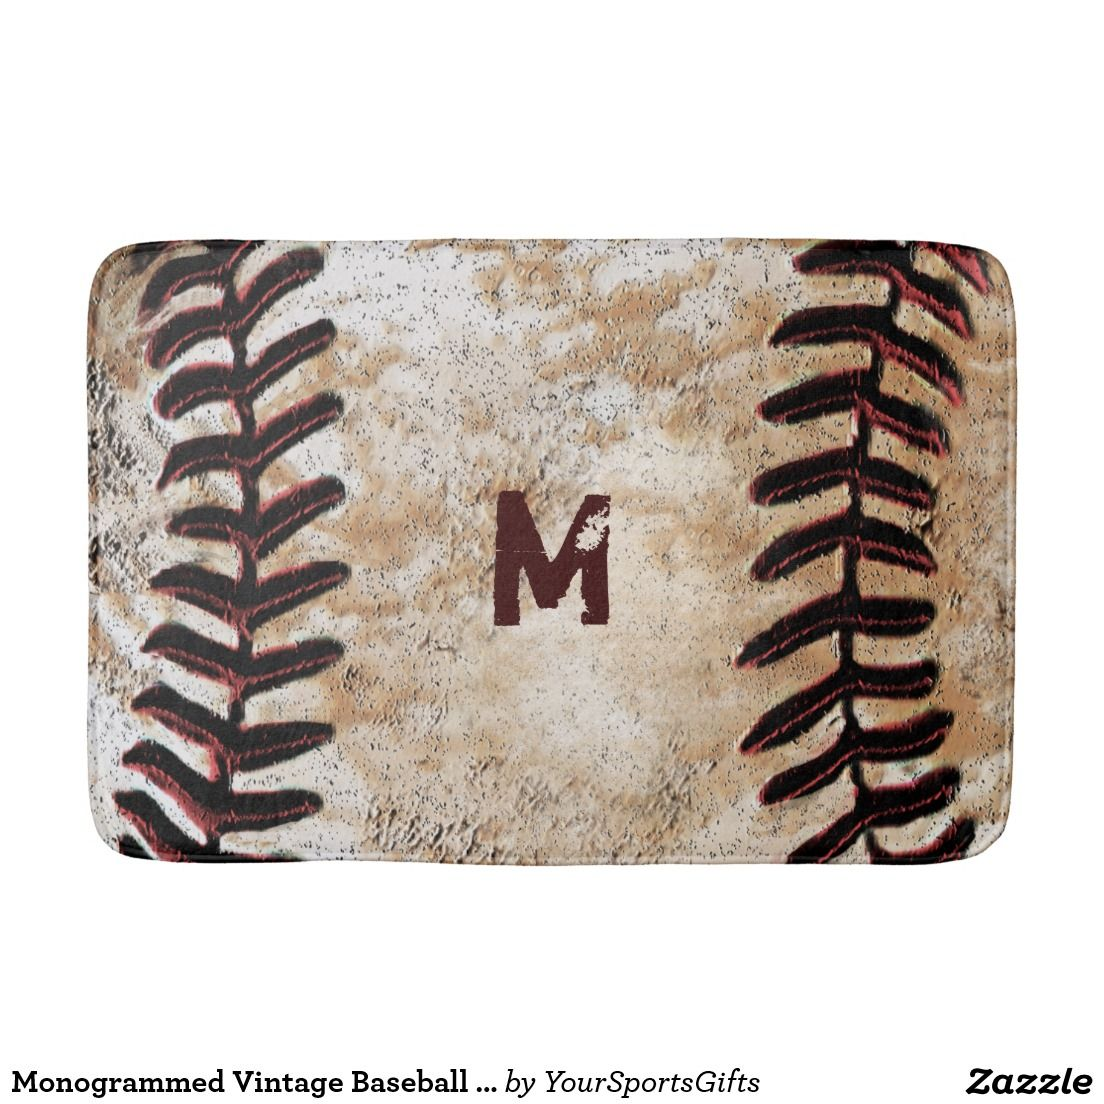 Shop Monogrammed Vintage Baseball Bath Rug For Man Cave Created By YourSportsGifts